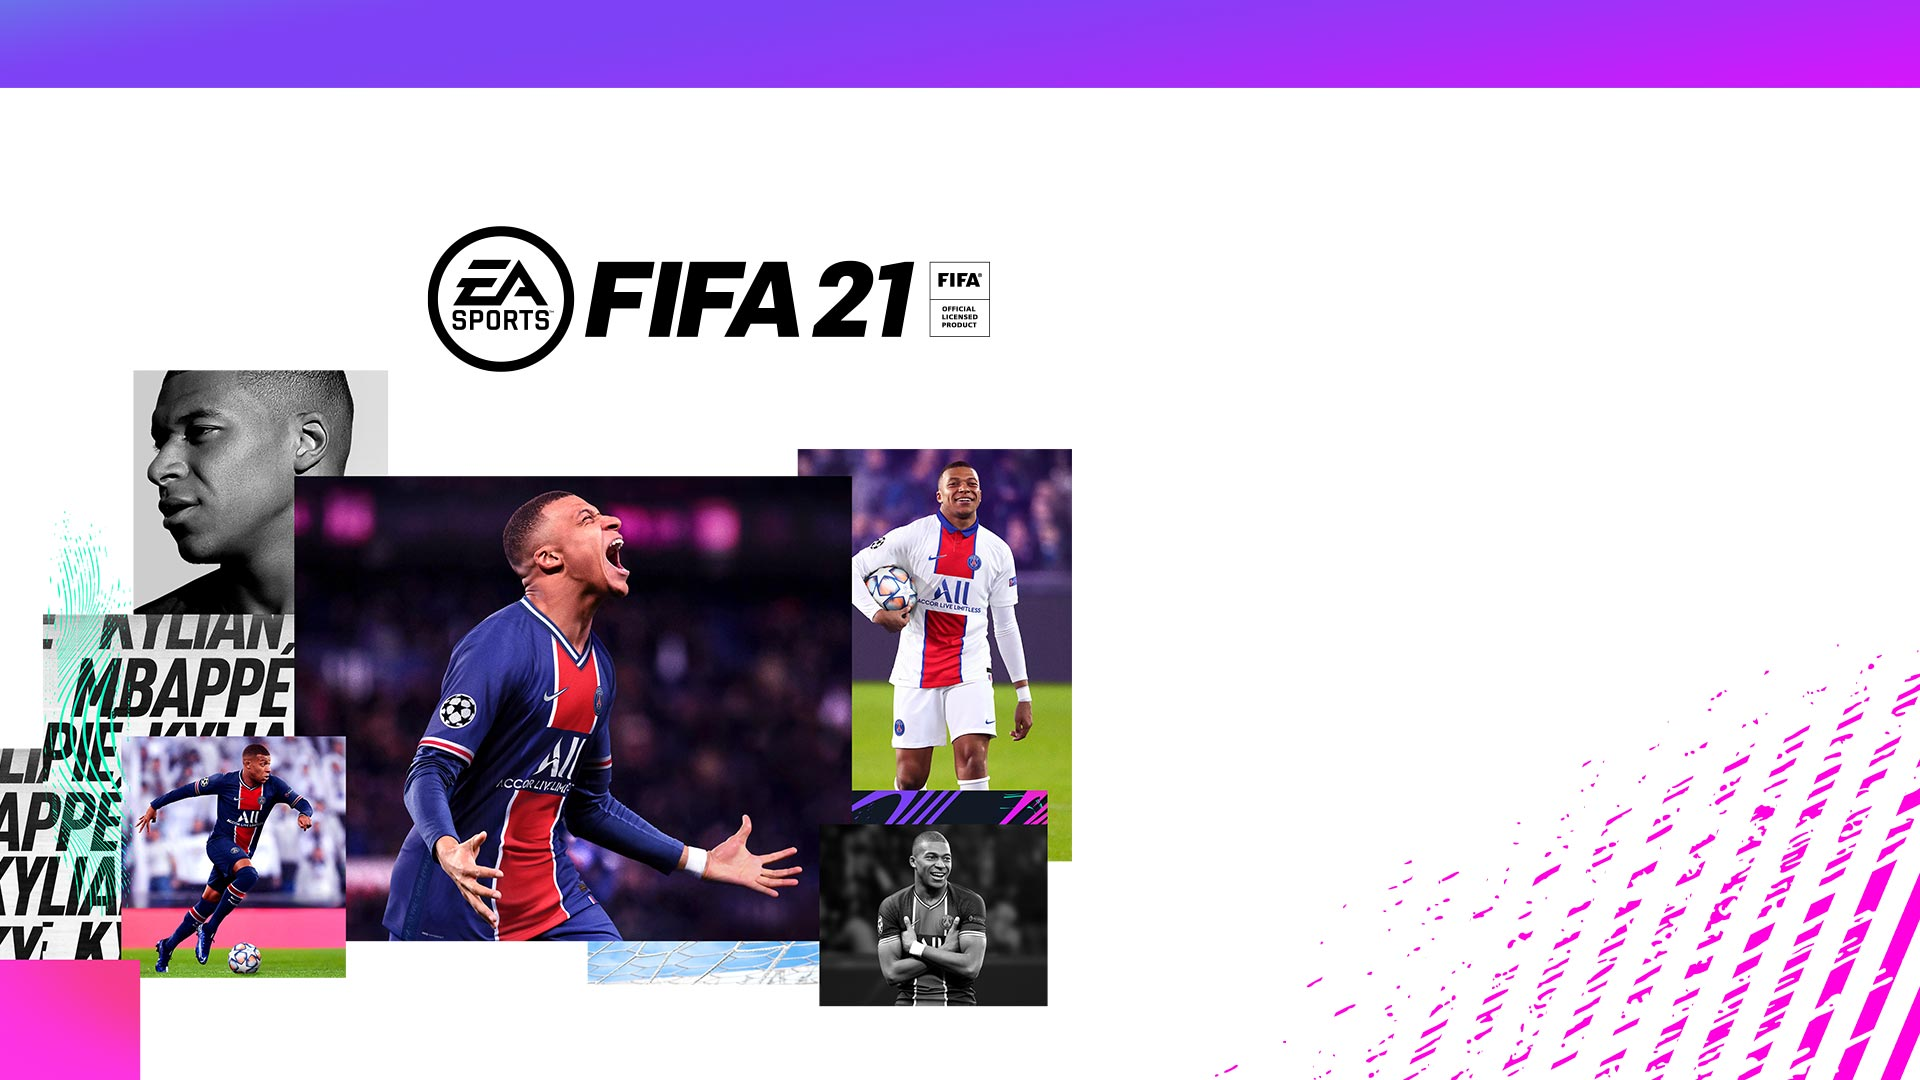 EA Sports logo, FIFA 21, FIFA Official Licensed Product, collage of Kylian Mbappé